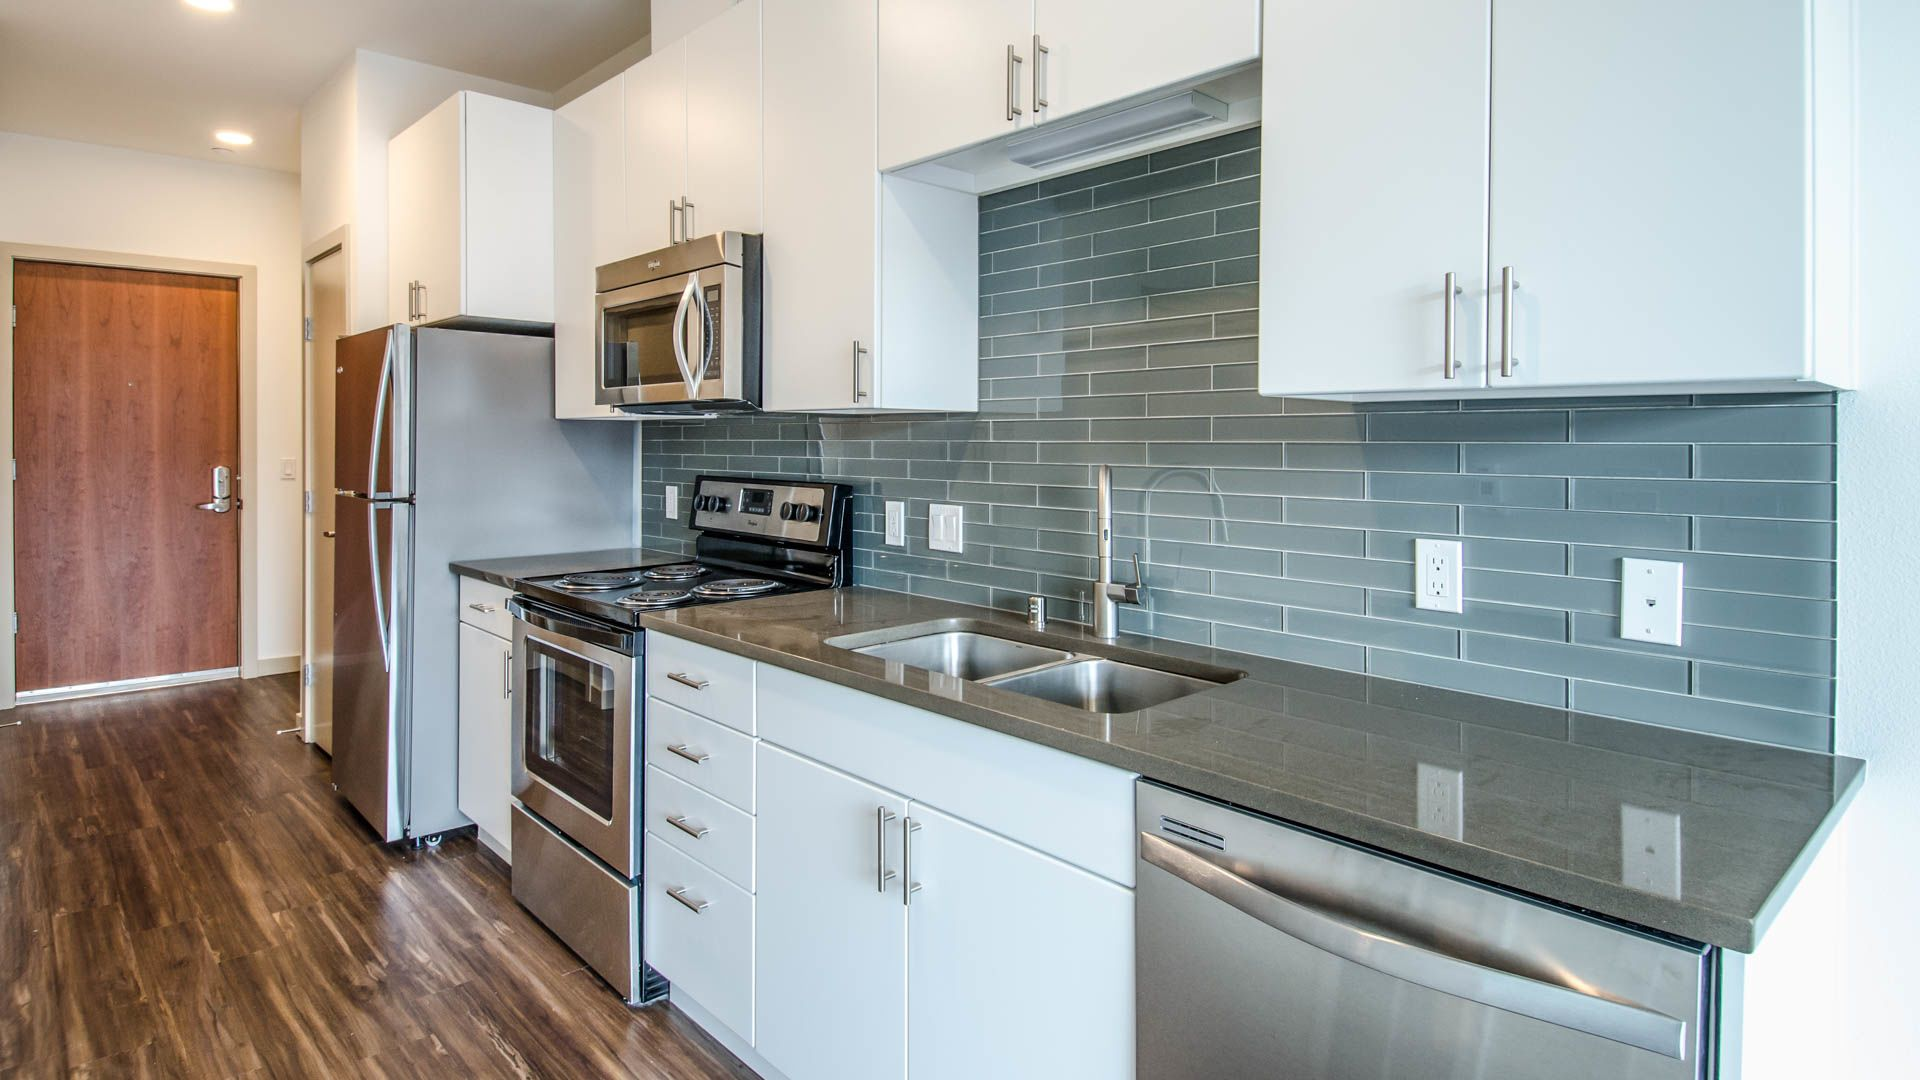 Odin Apartments In Ballard Seattle  Russell Ave NW - Apartments inside kitchen